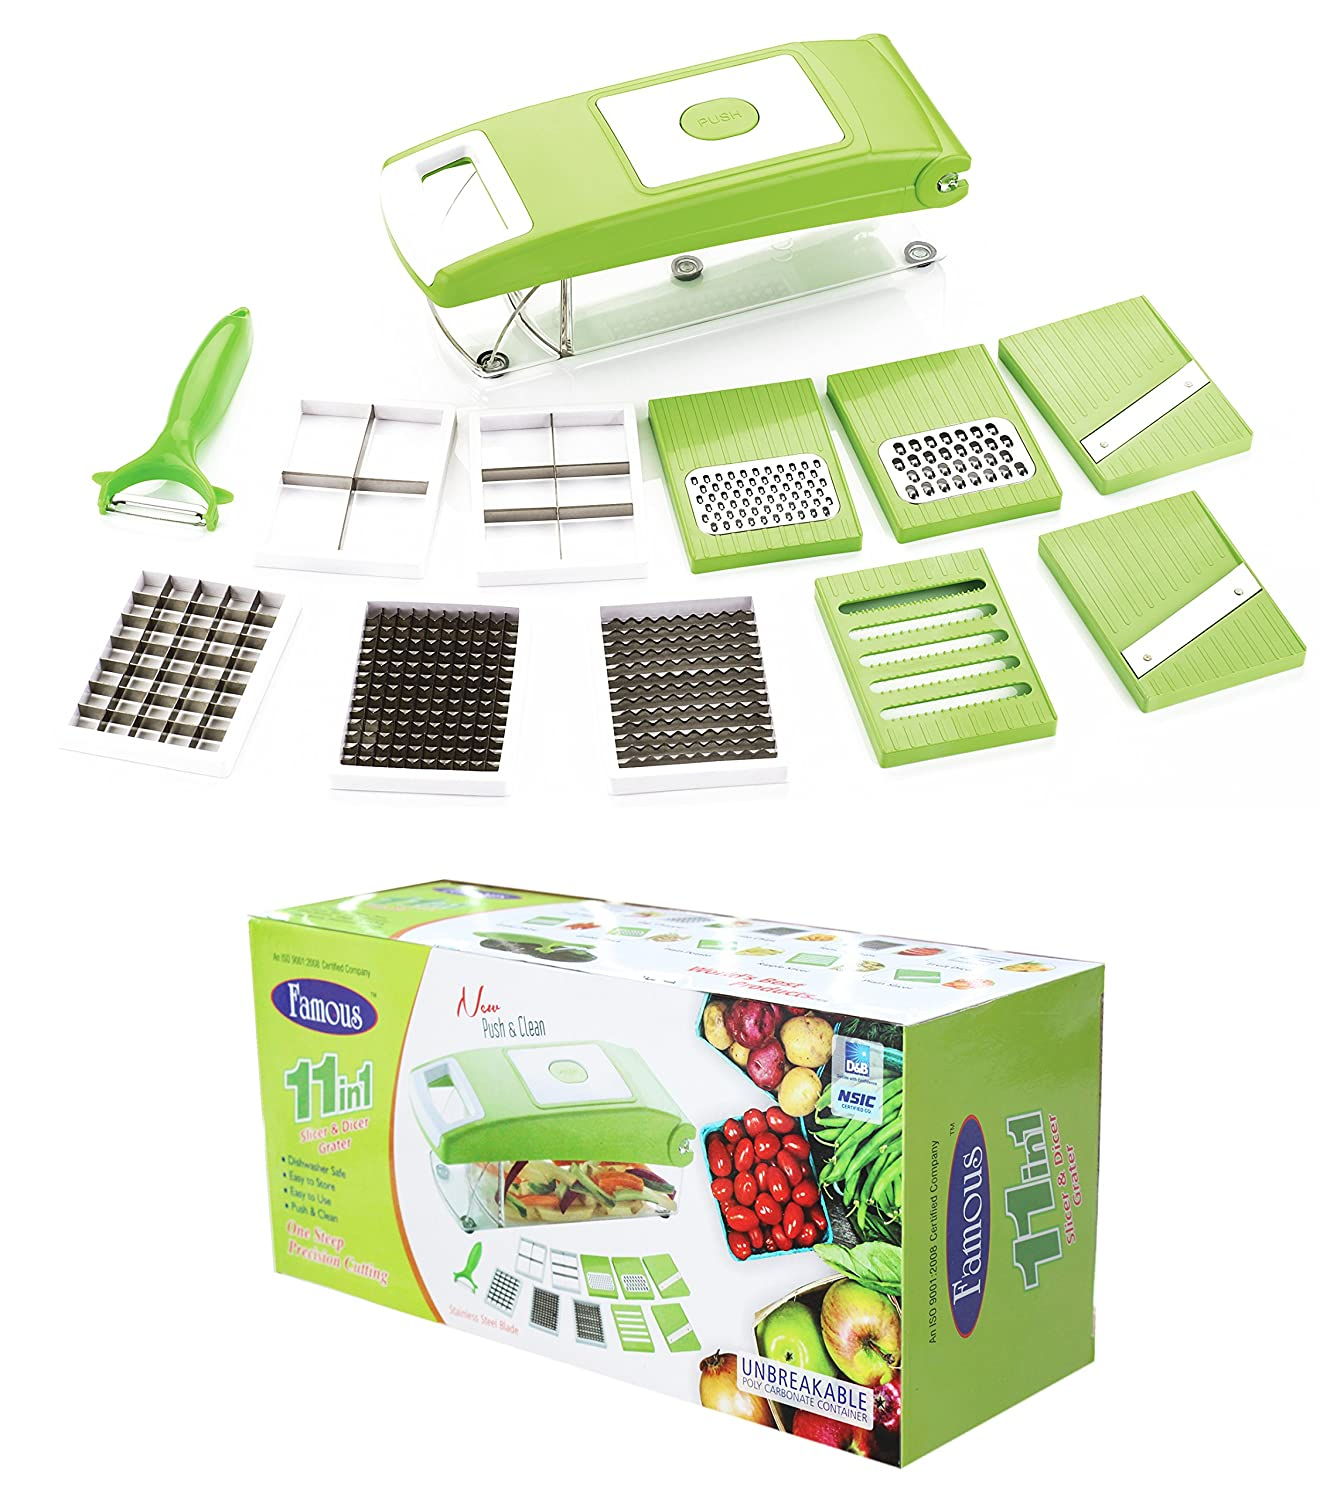 Amazon.com: Famous 11 In 1 Vegetable Fruits Cutter Slicer Dicer ...